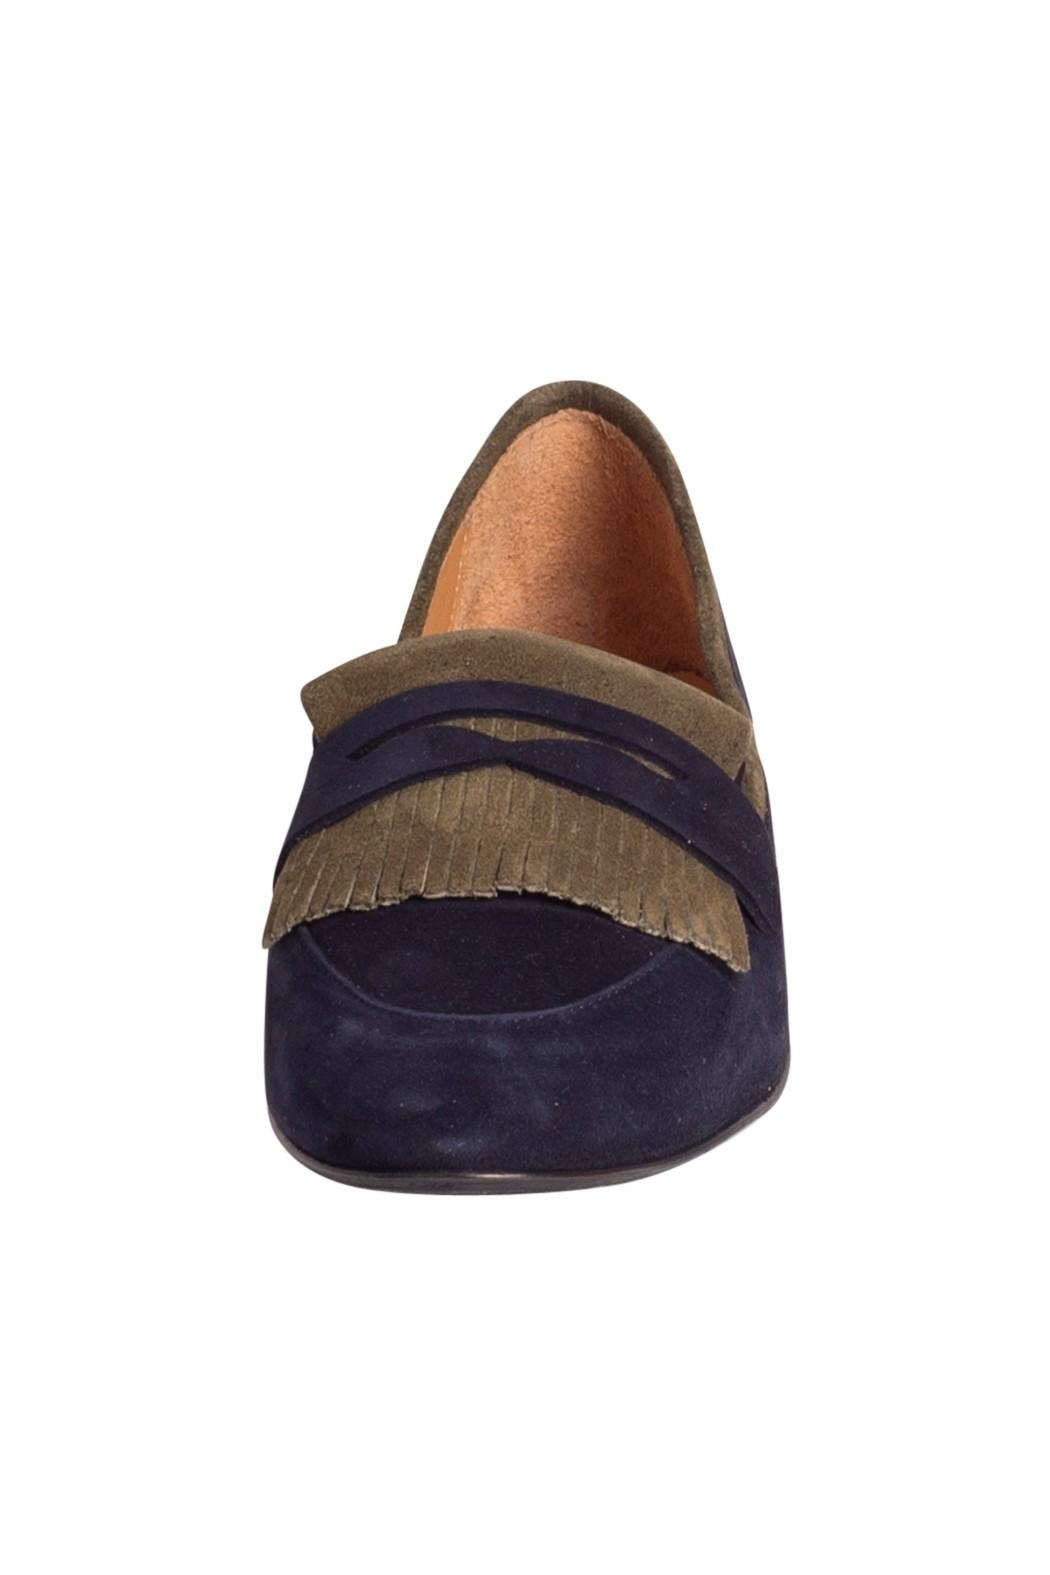 Pascucci Two-Tone Suede Loafer - Back Cropped Image